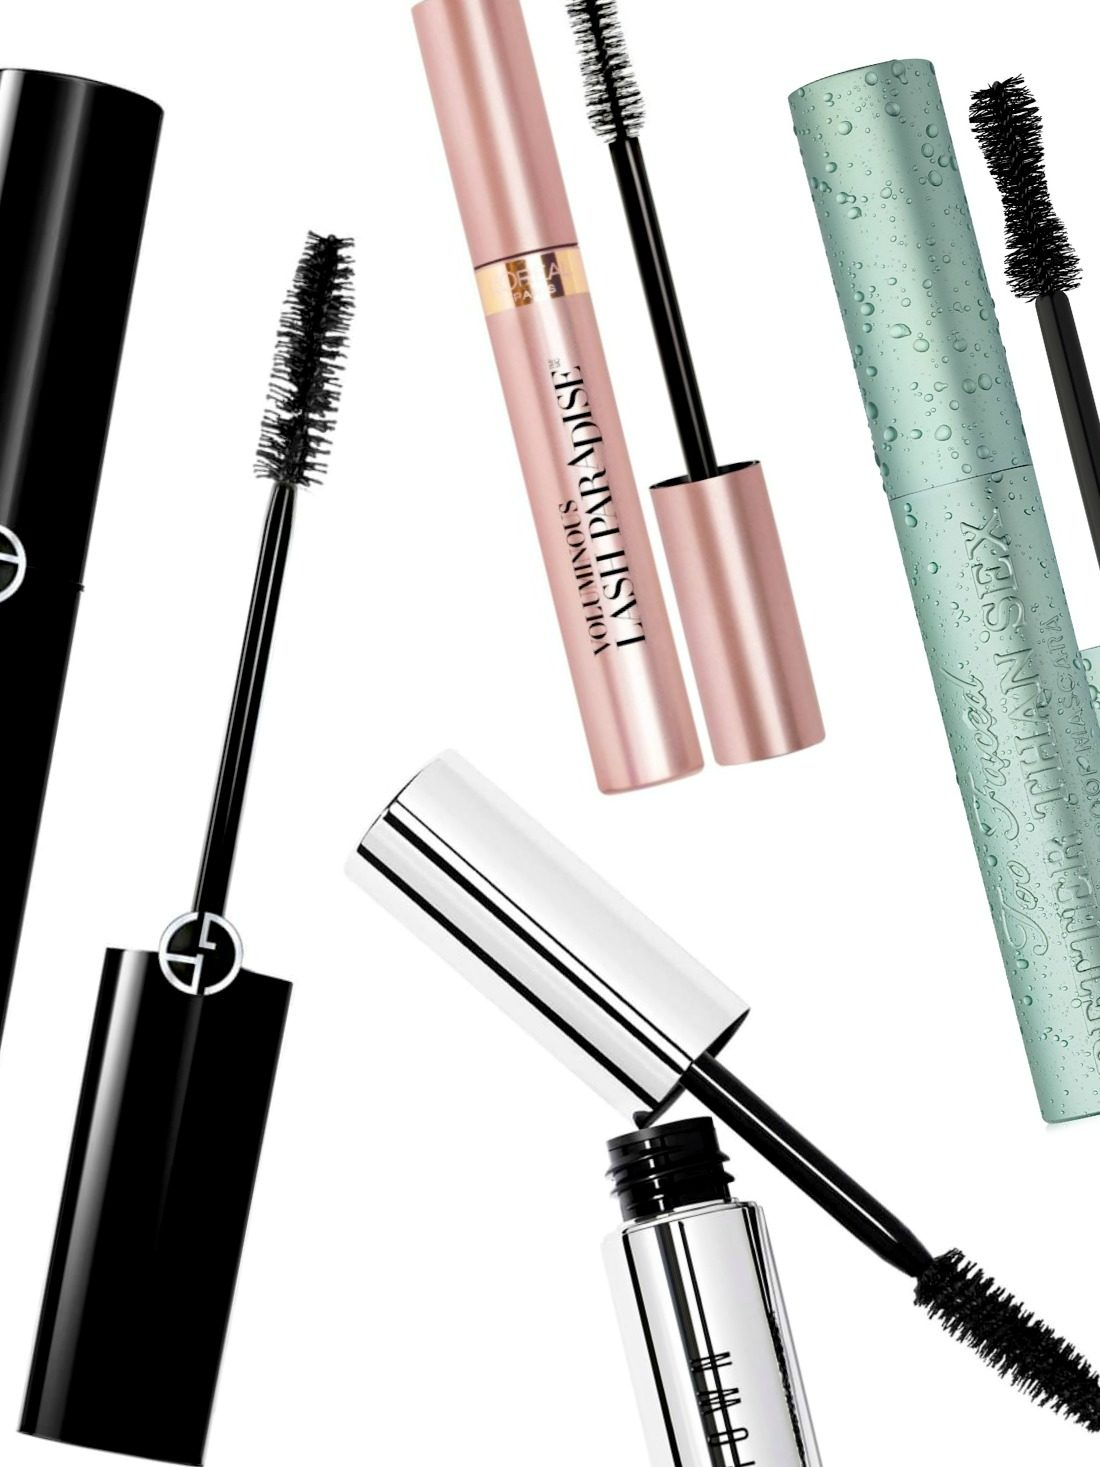 Avoid panda eyes during the ups and downs of life by reading our list of the best waterproof mascara that won't smudge or flake. Take a look!